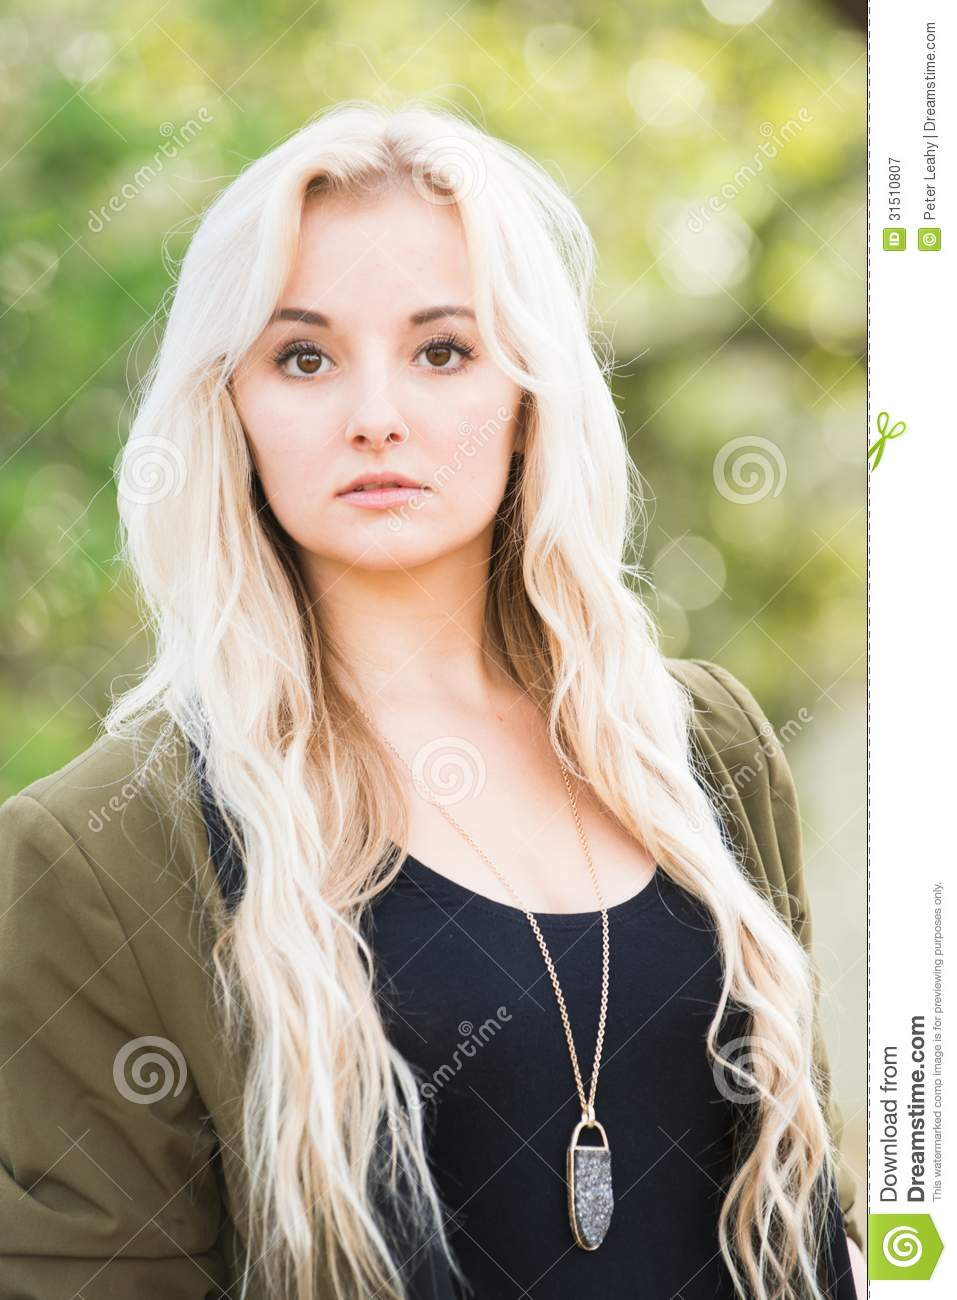 Brown Eyes And Blonde Hair Royalty Free Stock Photography Image 31510807